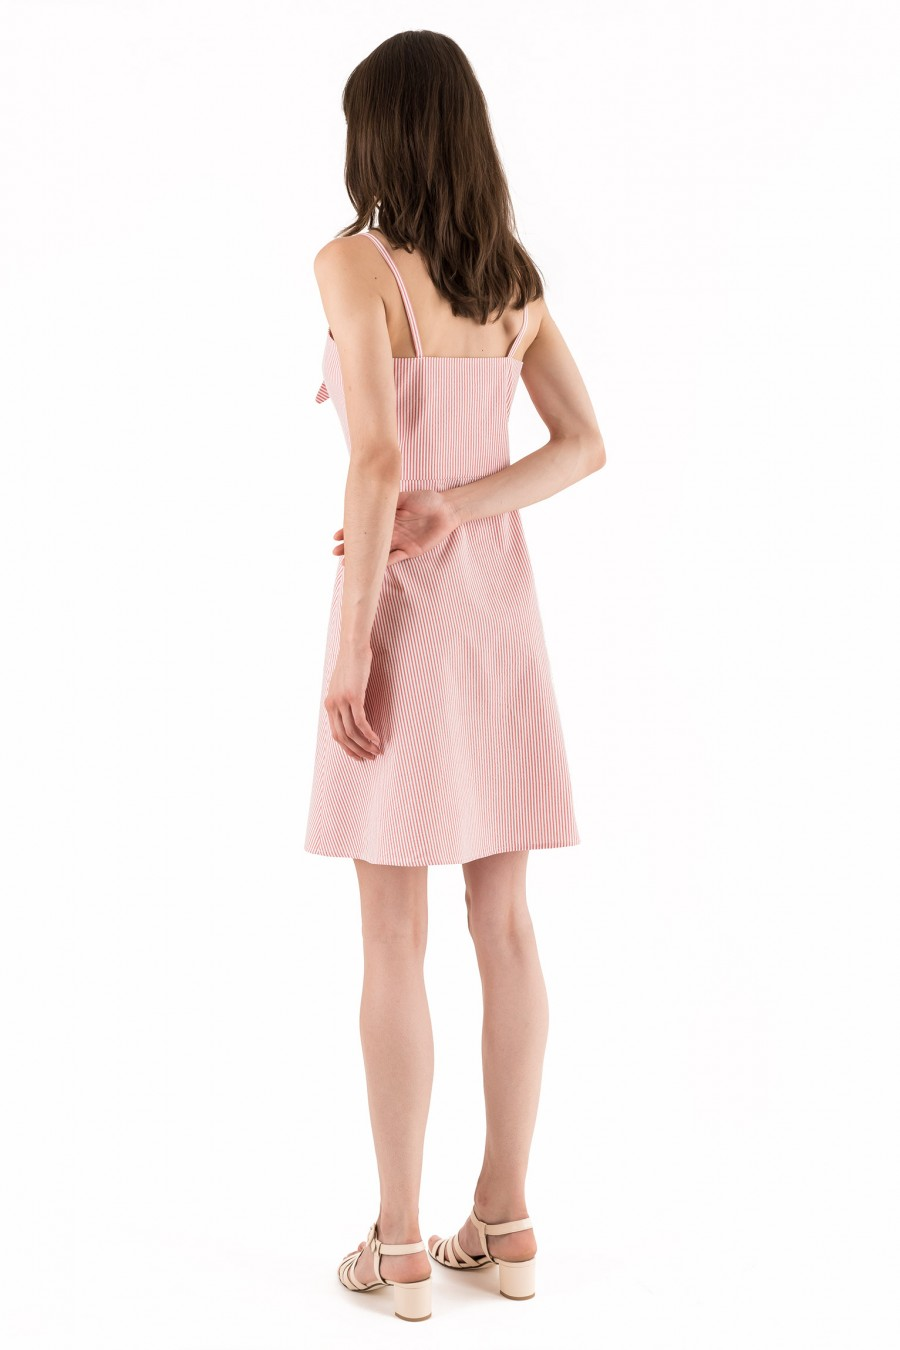 Summer pink dress with stripes